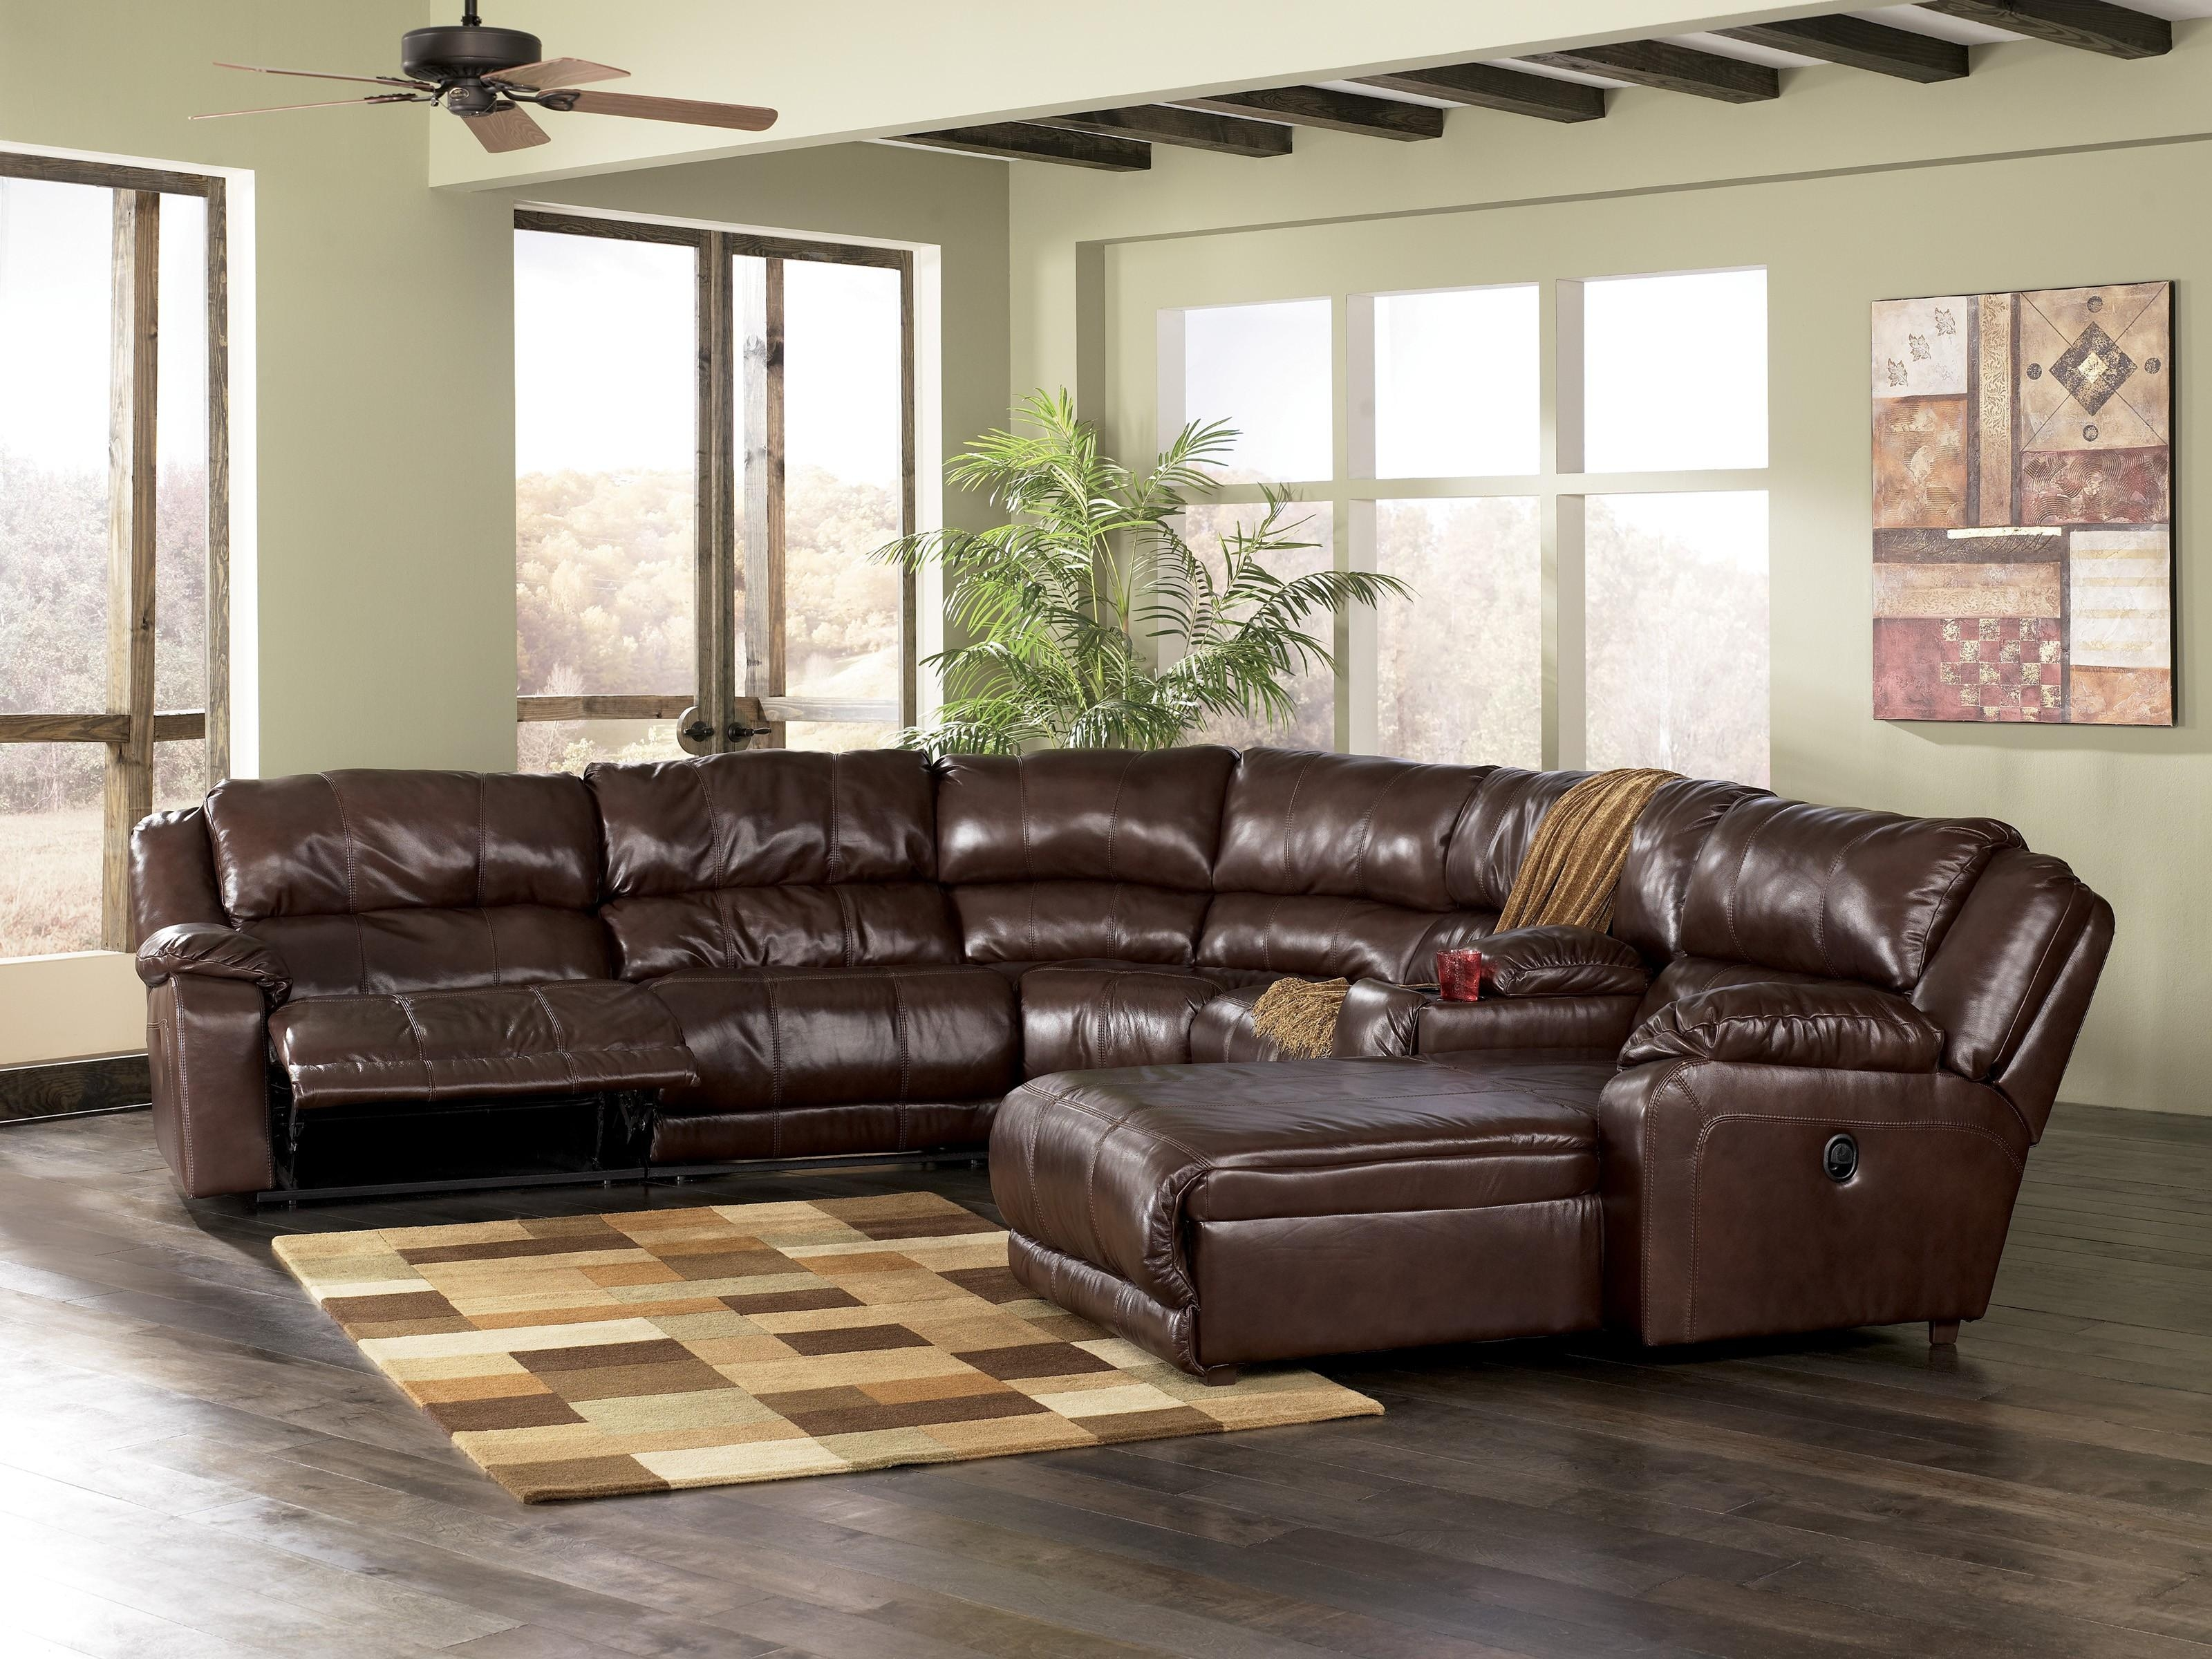 L Shaped Leather Sectional Sofa – Leather Sectional Sofa Pertaining To Leather L Shaped Sectional Sofas (View 9 of 20)